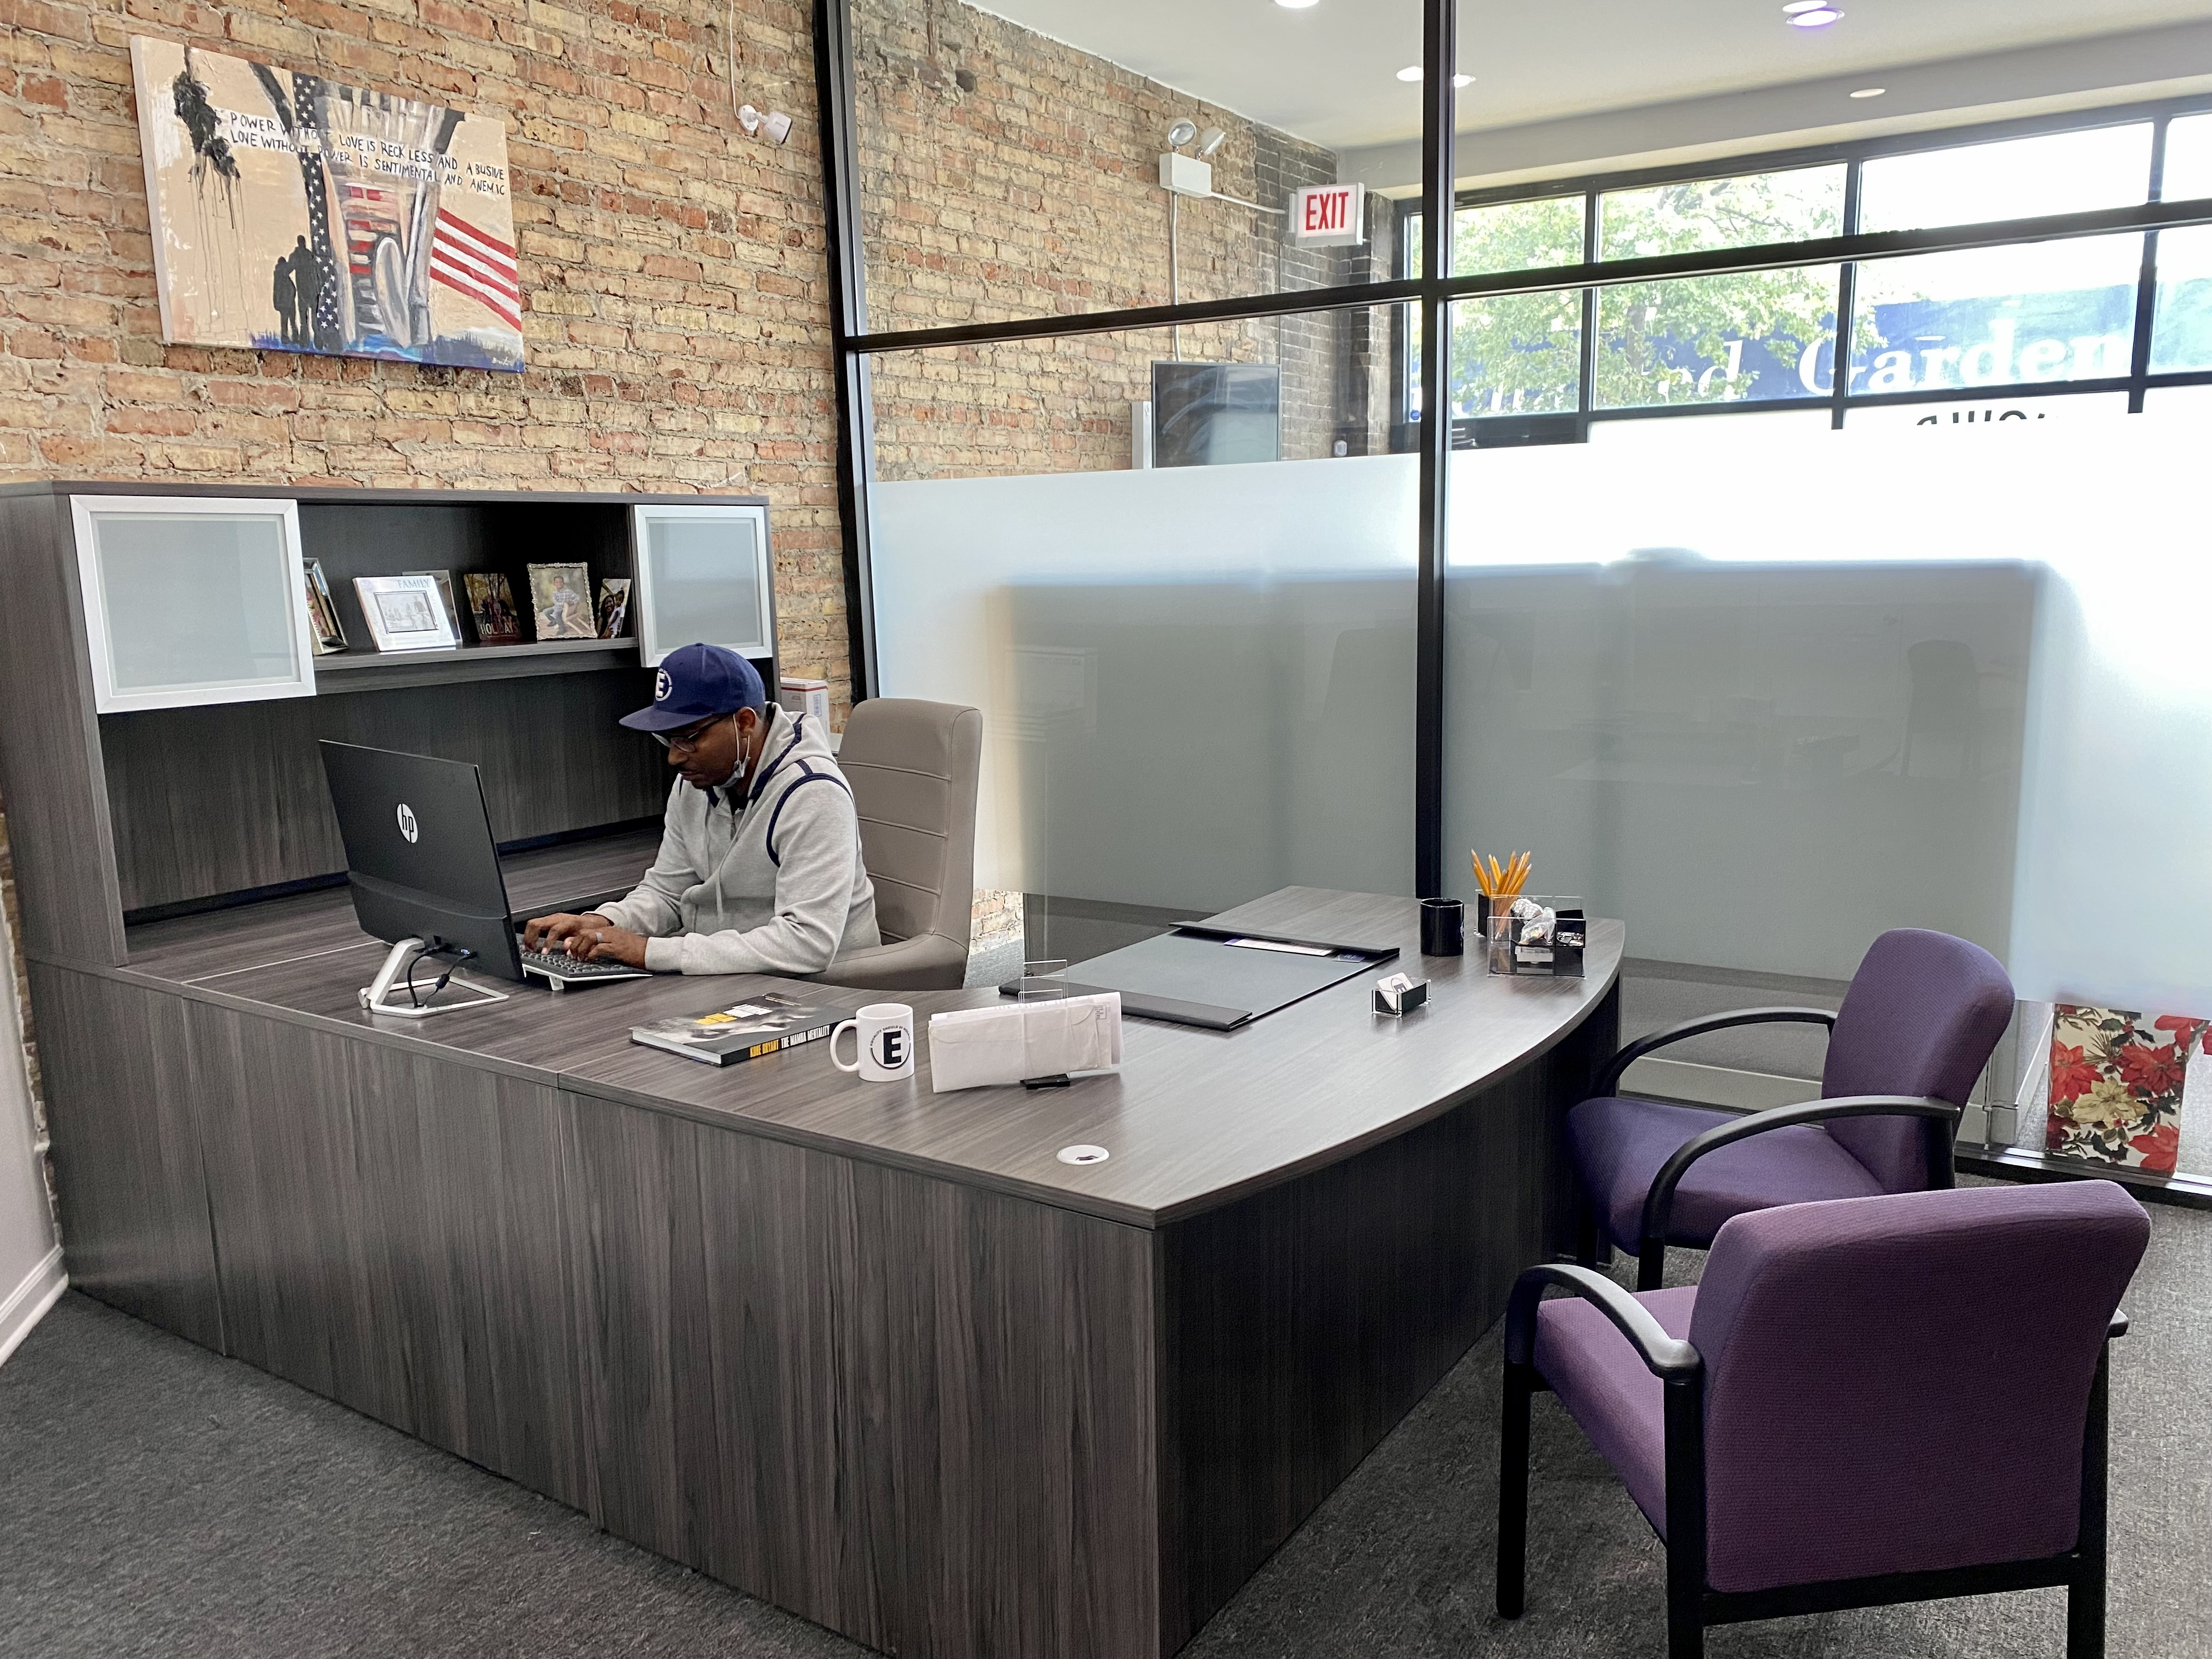 Romel Murphy's nonprofit Equality Should Be Normal is one of 11 centers receiving internet access and laptops through the South Side Connectivity Collaborative.